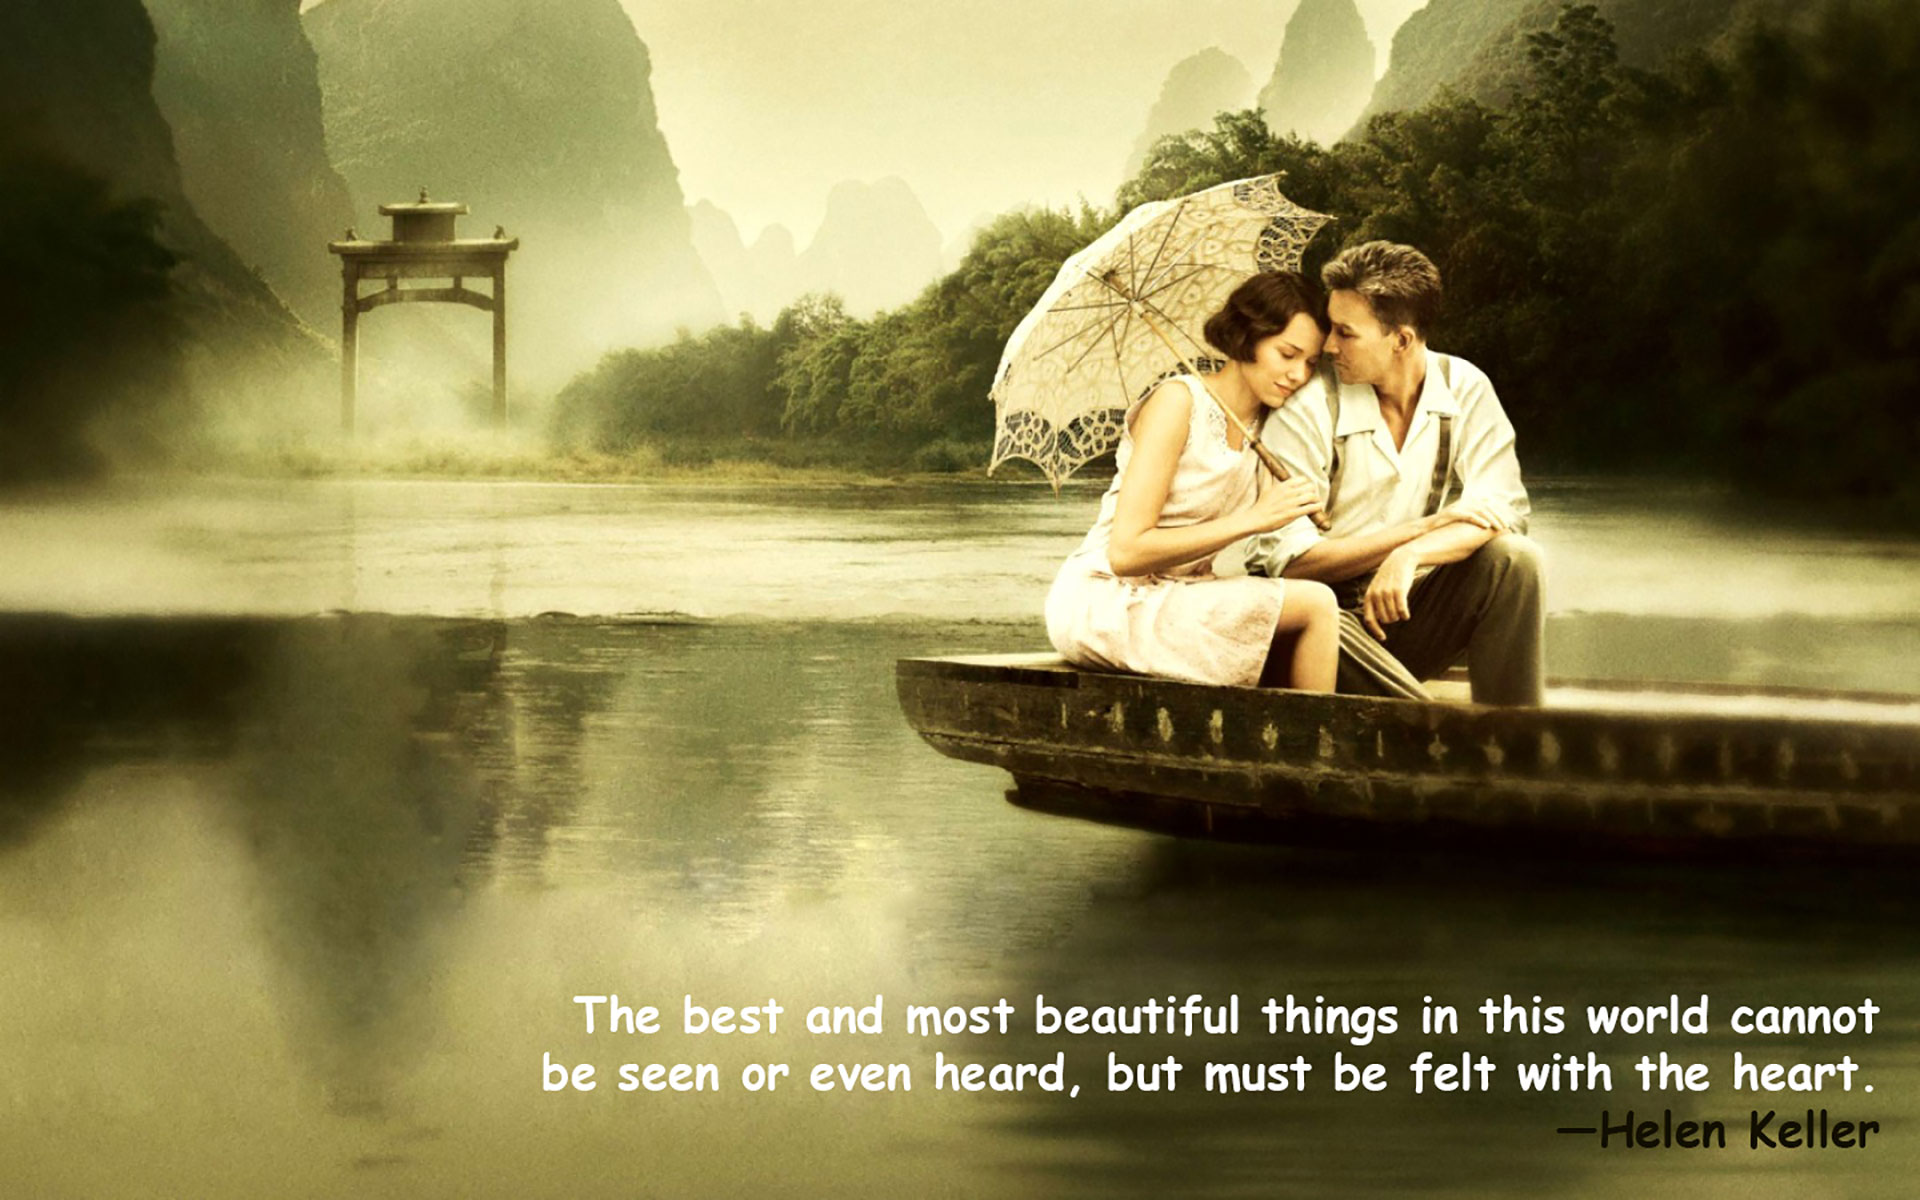 Wonderful Wallpaper Love Happy - Famouse-love-images-with-quotes  HD_789146.jpg?92dbd0\u002692dbd0